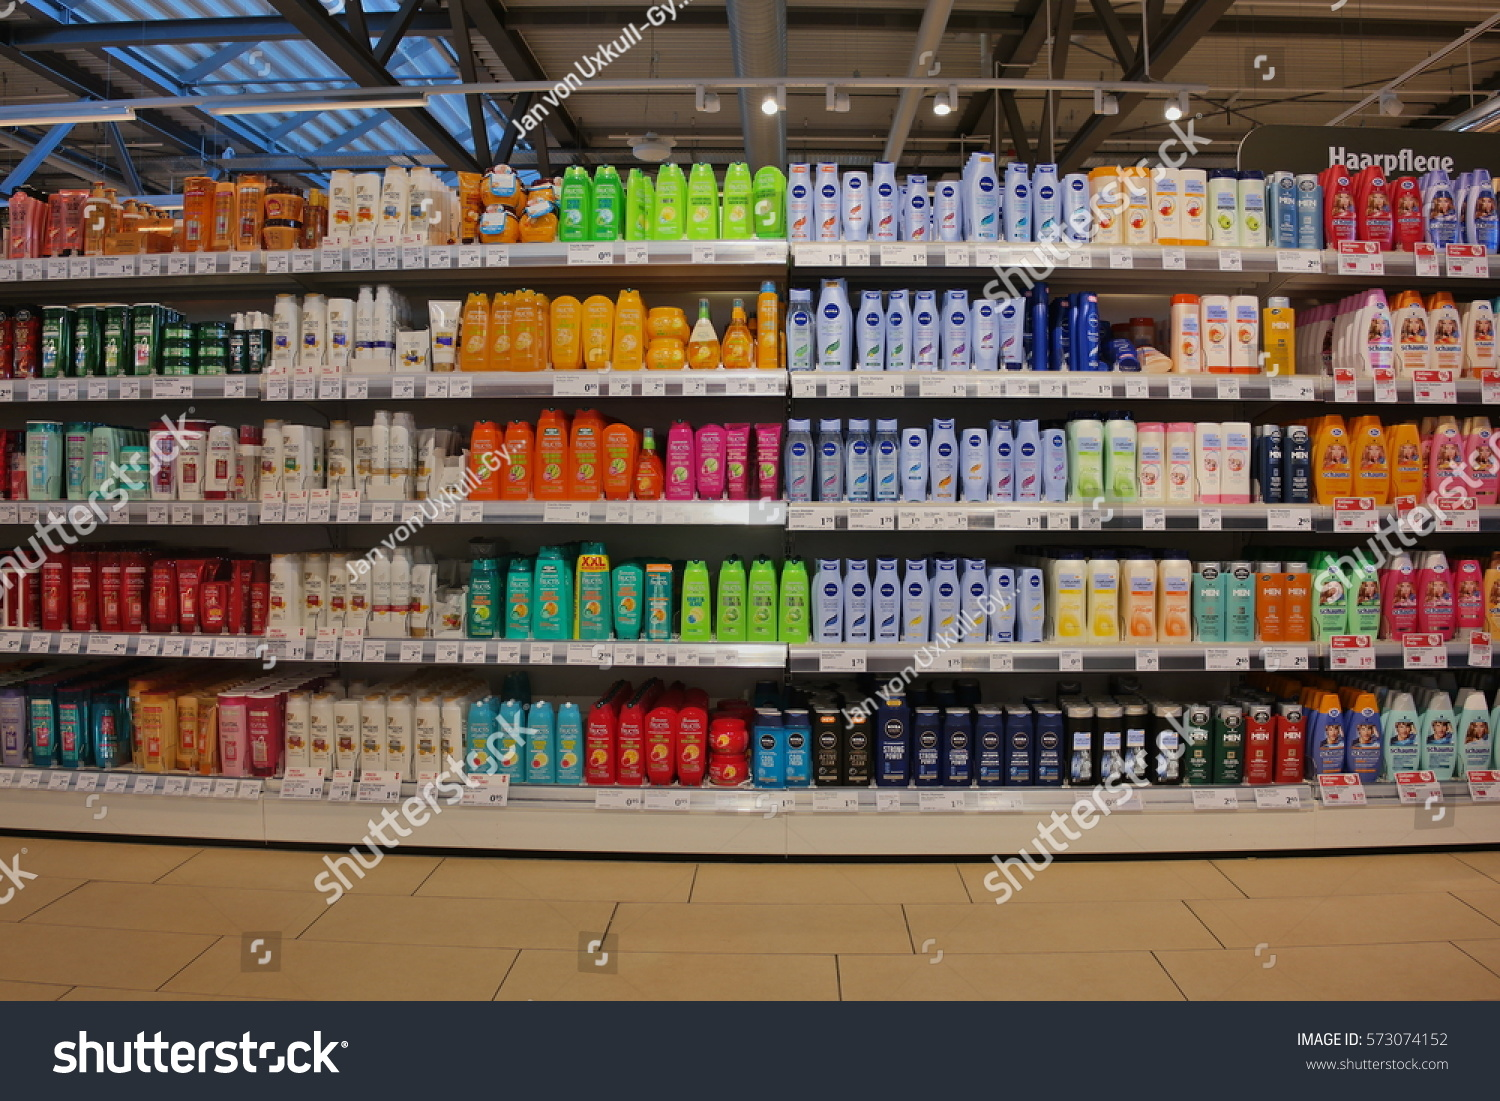 Copy Shop Koblenz Koblenz Germany January 18 2017 Shelf Stock Photo Edit Now